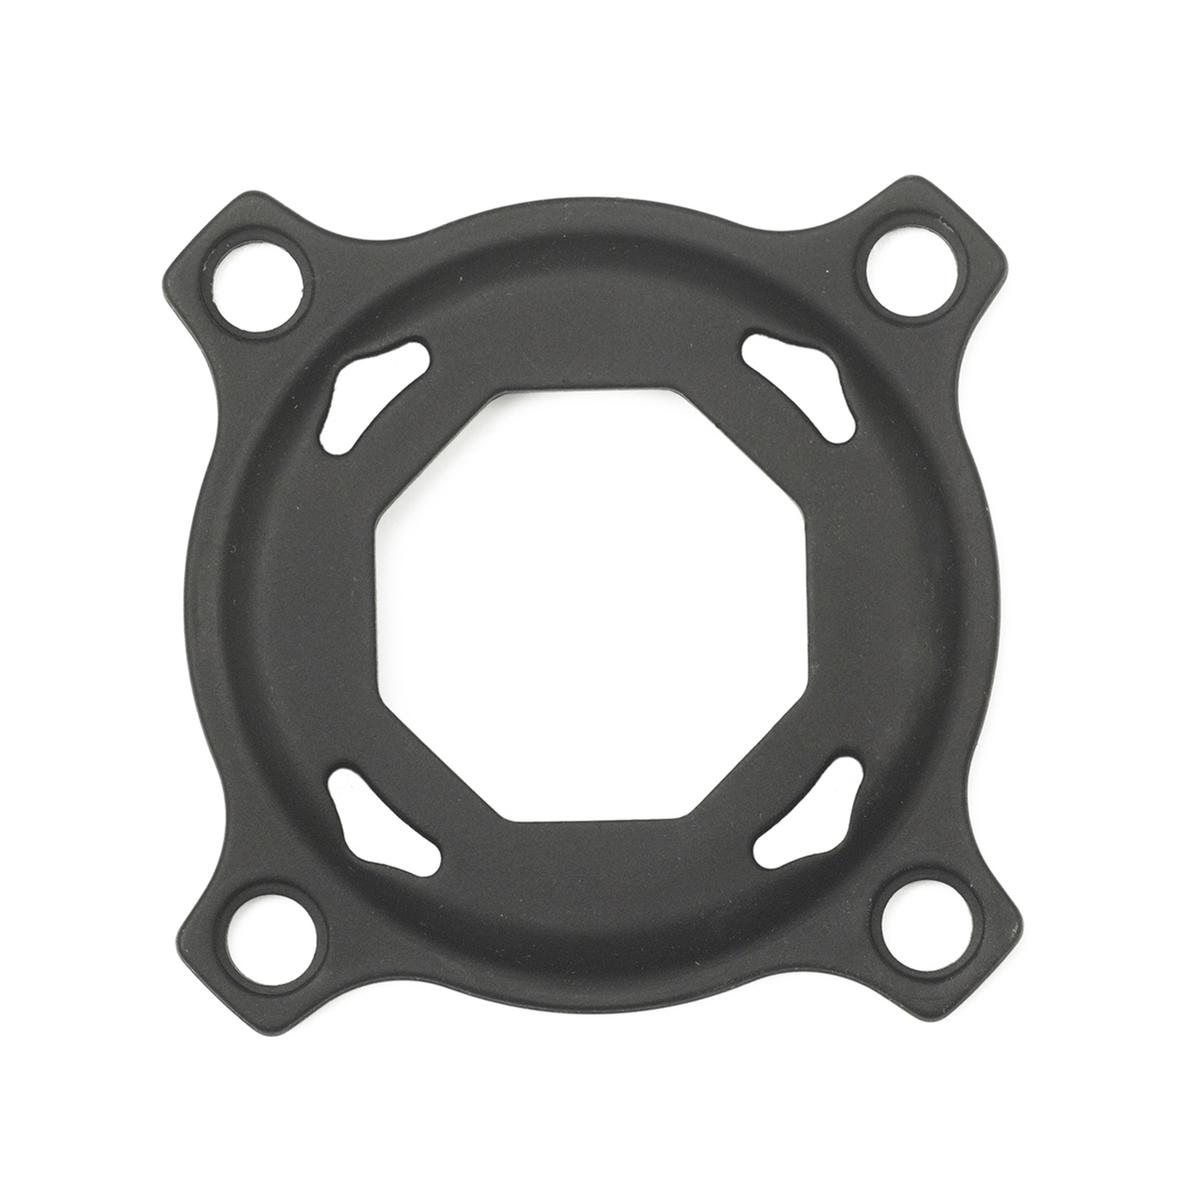 Spider, for mounting the chainring old